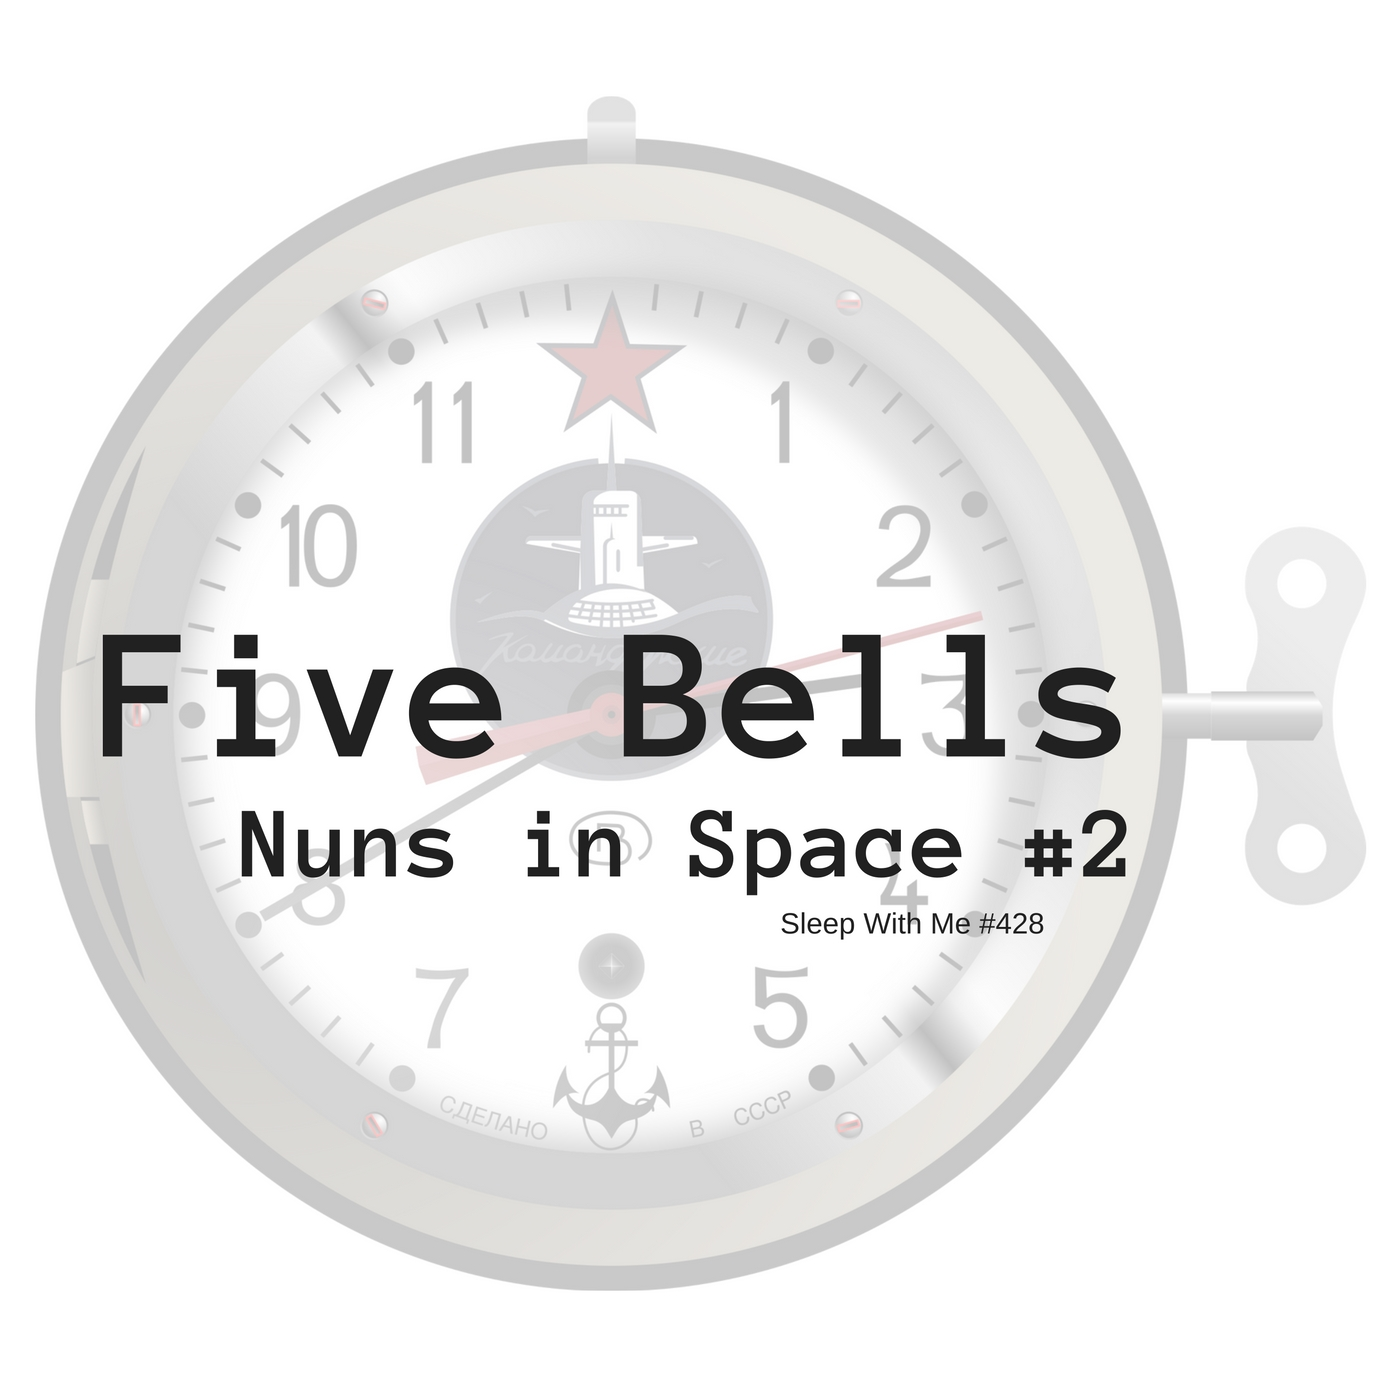 Five Bells | Nuns in Space #2 | Sleep With Me #428